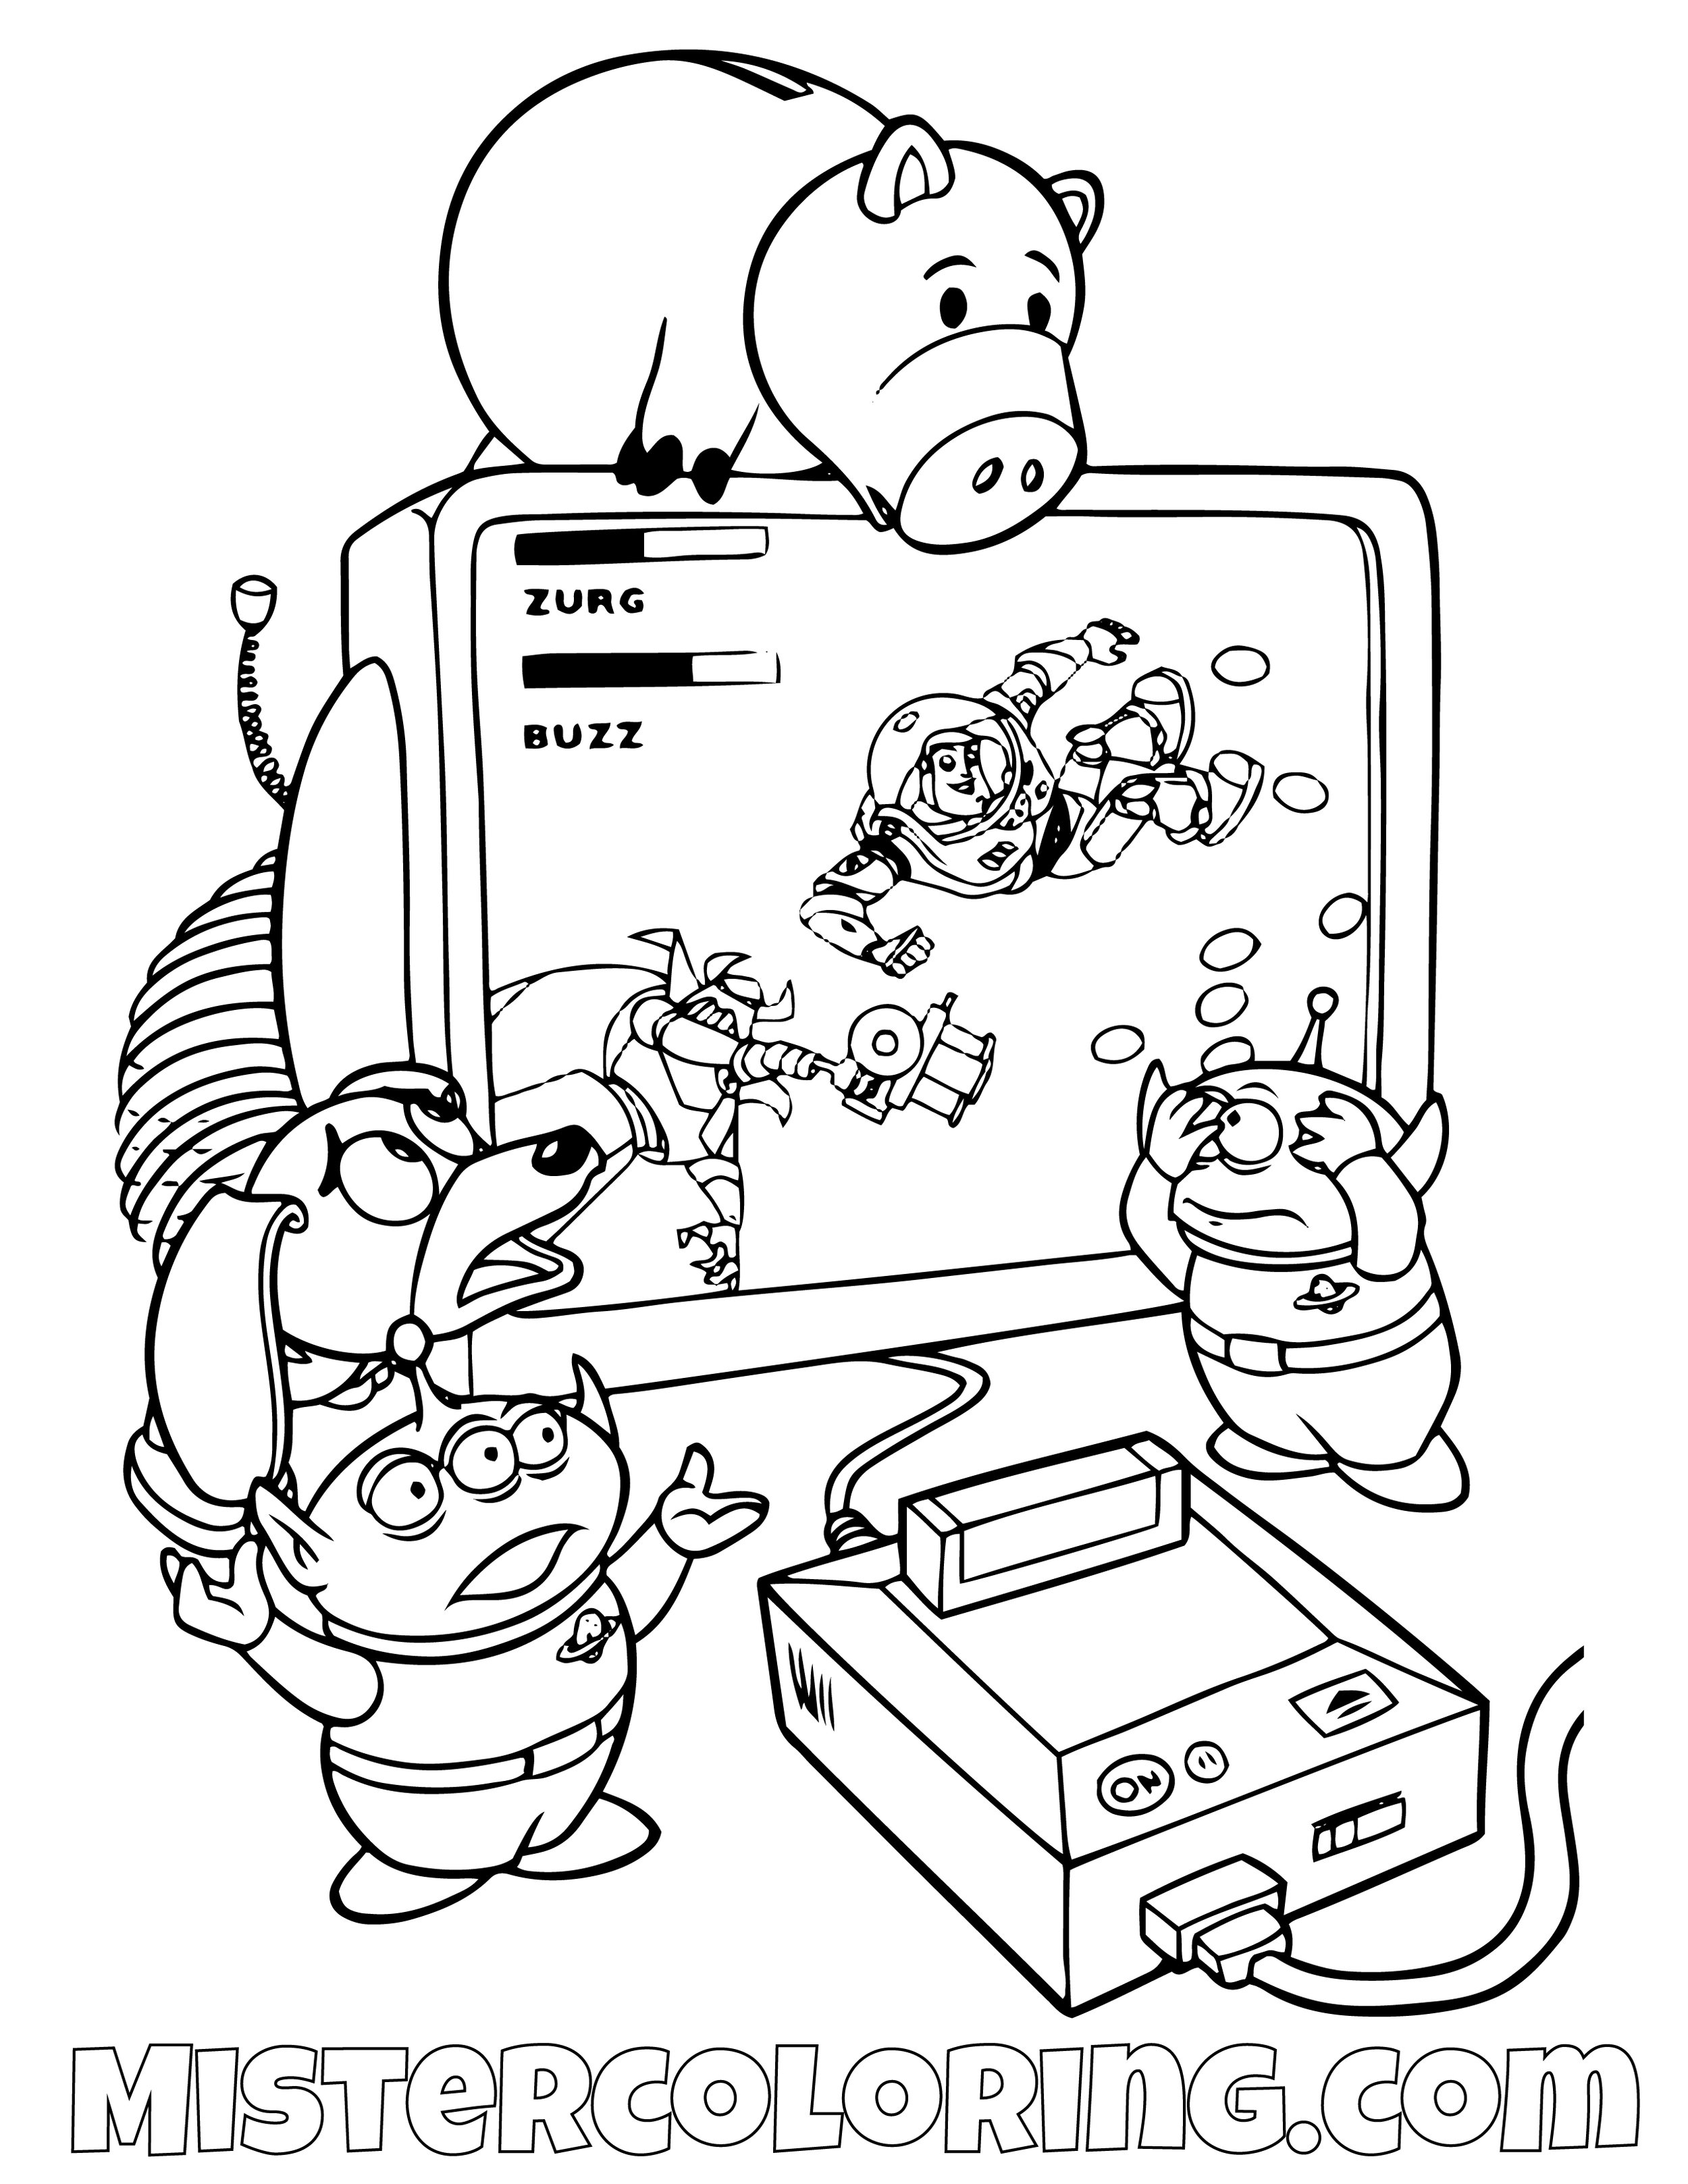 Alien Stringy Dog And Ham Playing A Video Game Toy Story Coloring Page